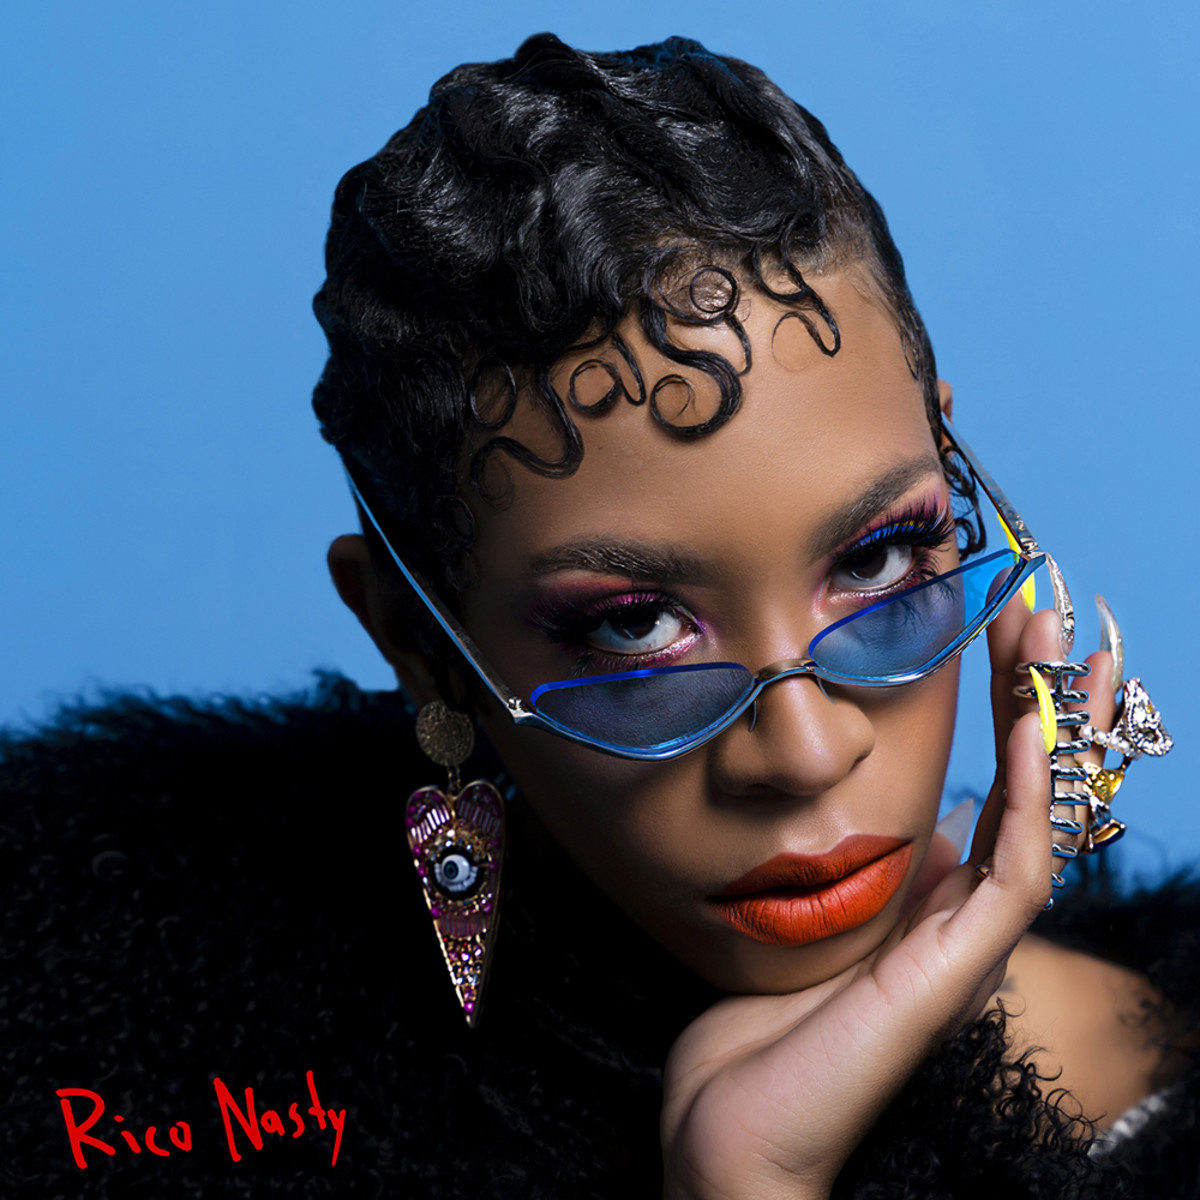 rico-nasty-nasty-album-art